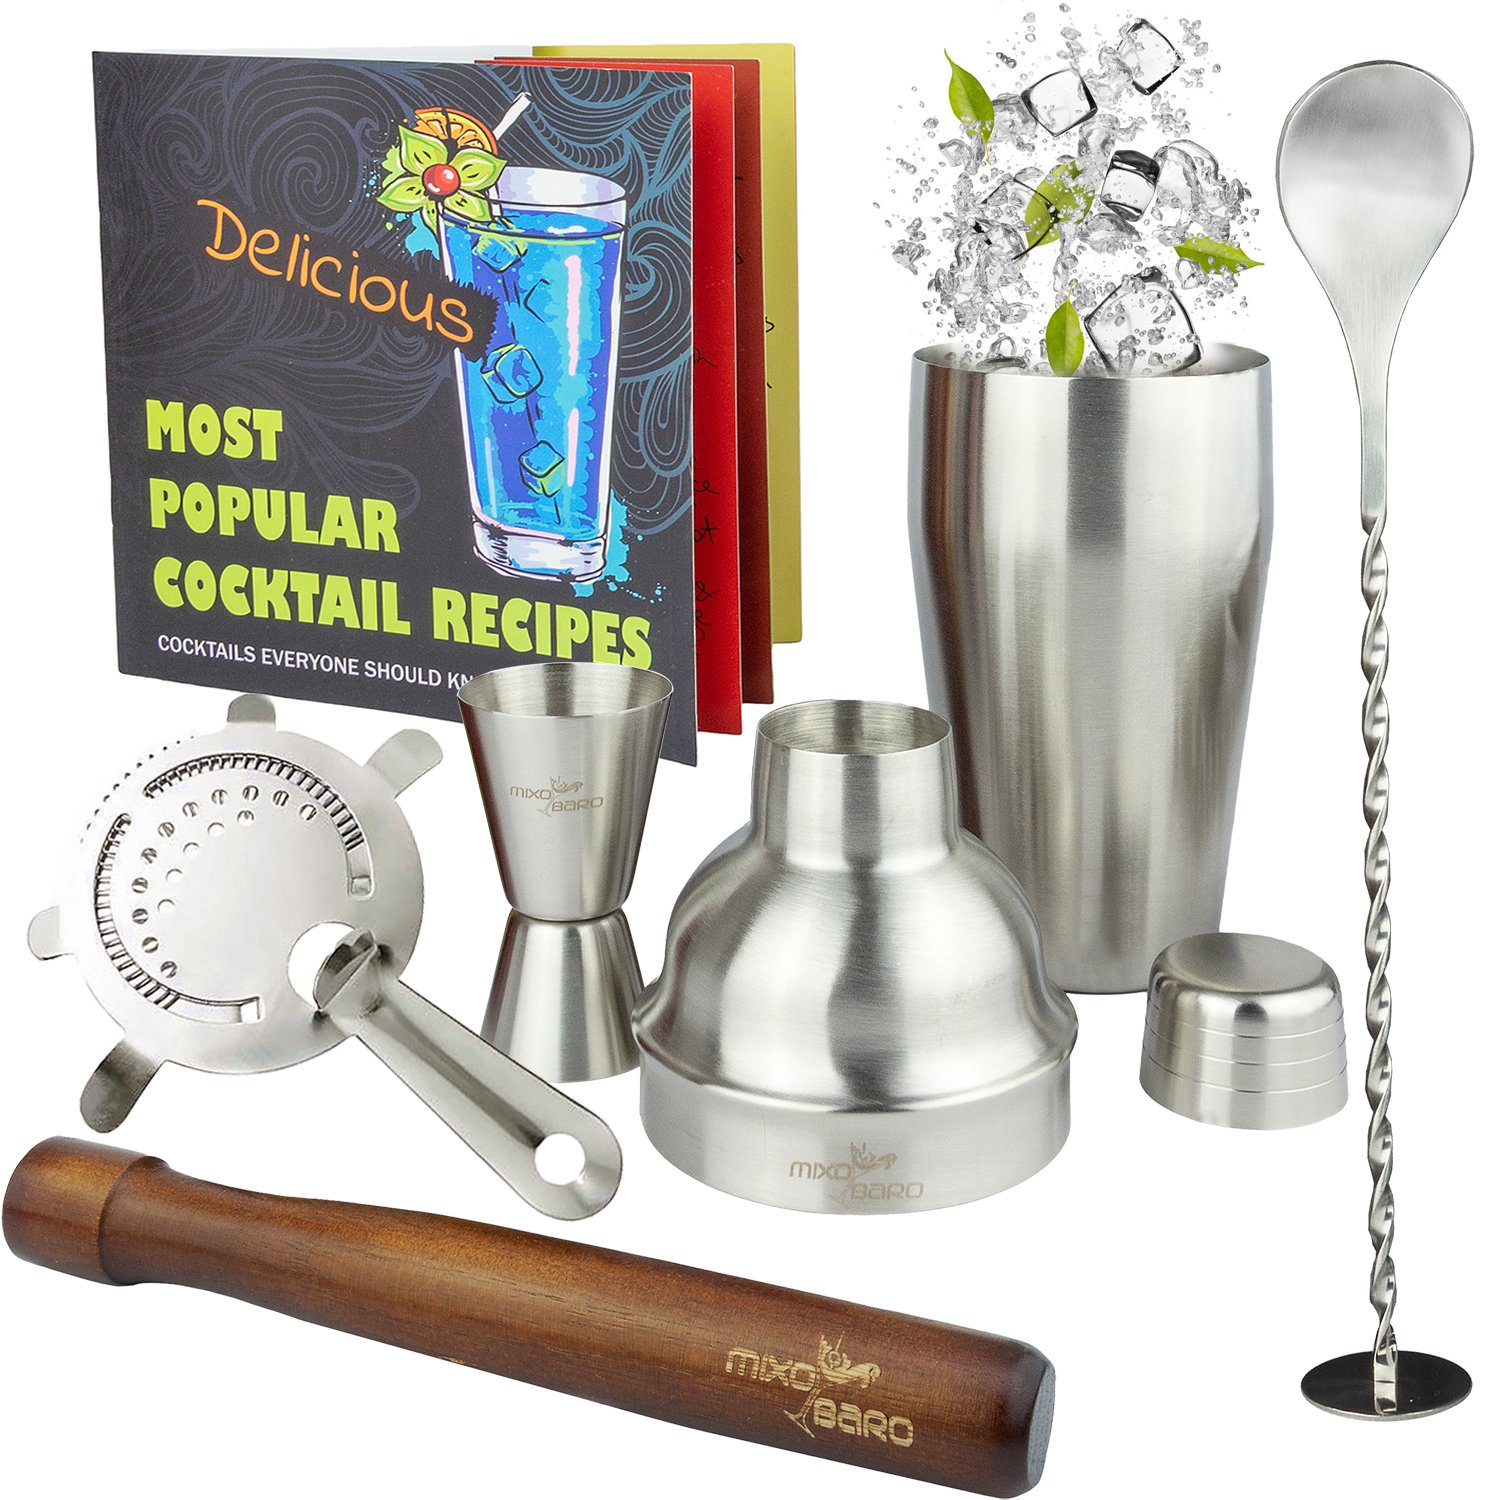 75c711186fa49 MIXOBARO Professional Manhattan Cocktail Making Set - Stainless Steel Cocktail  Shaker Kit with Starter Recipe Book and Cocktails Maker Accessories -  Classic ...